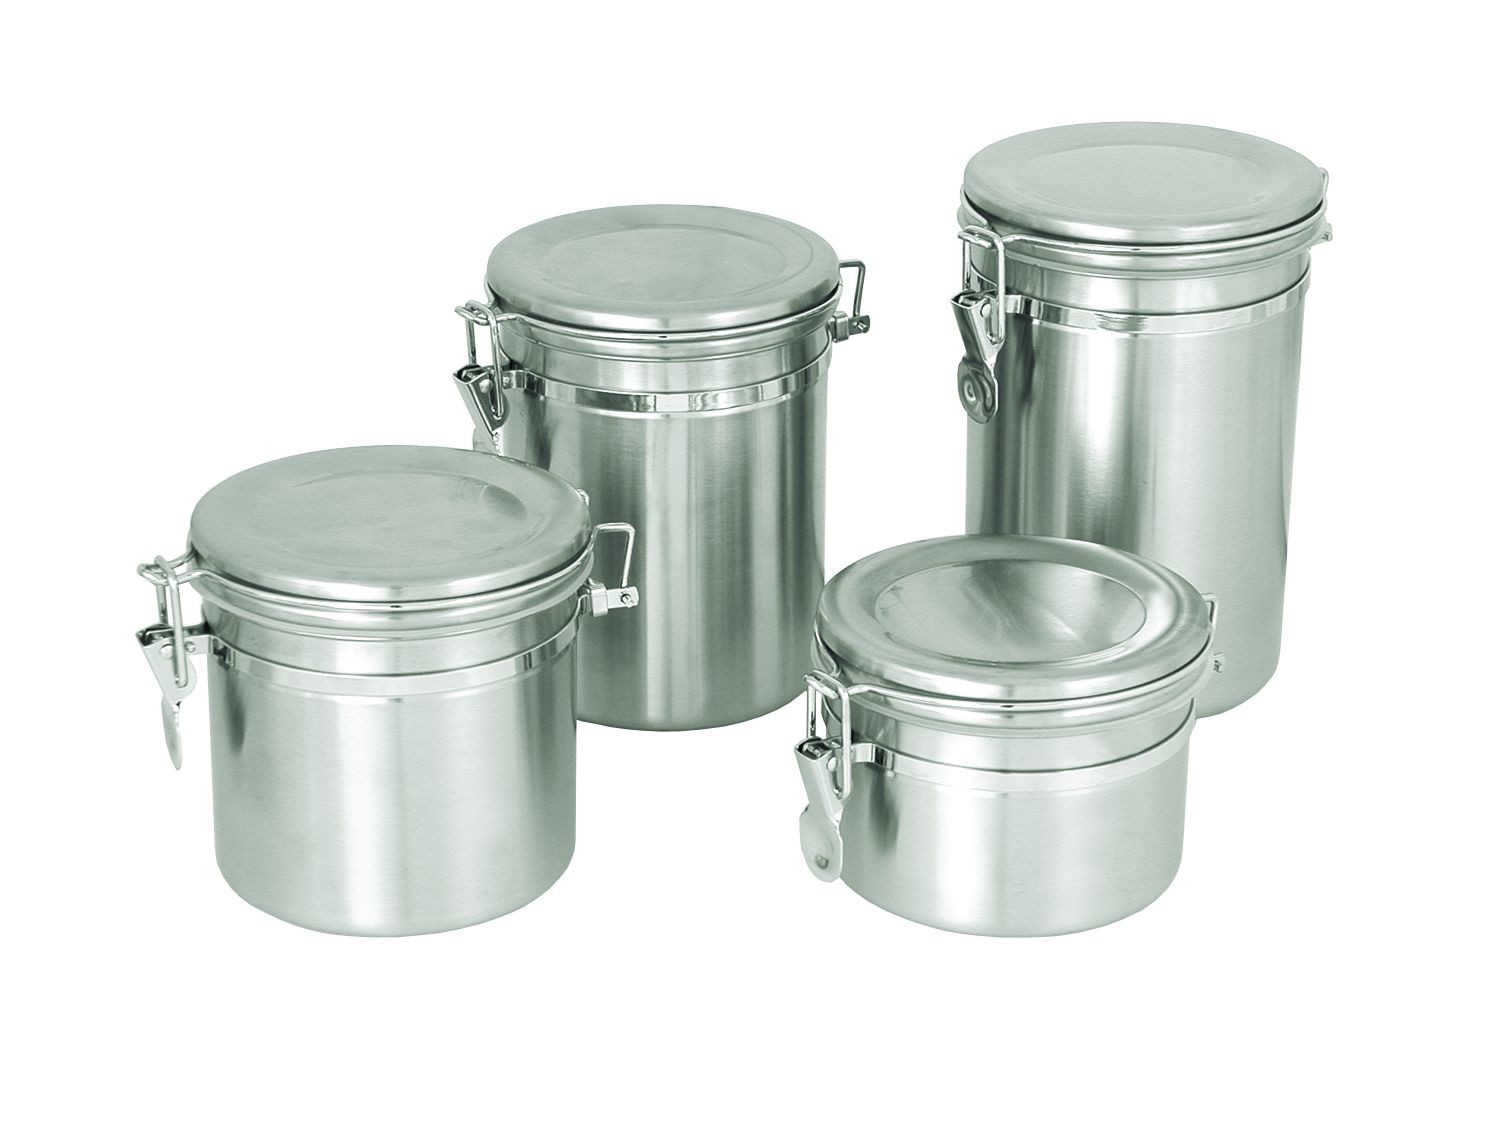 Update International CAN-4SS Canister 30 Oz. with Stainless Steel Lid